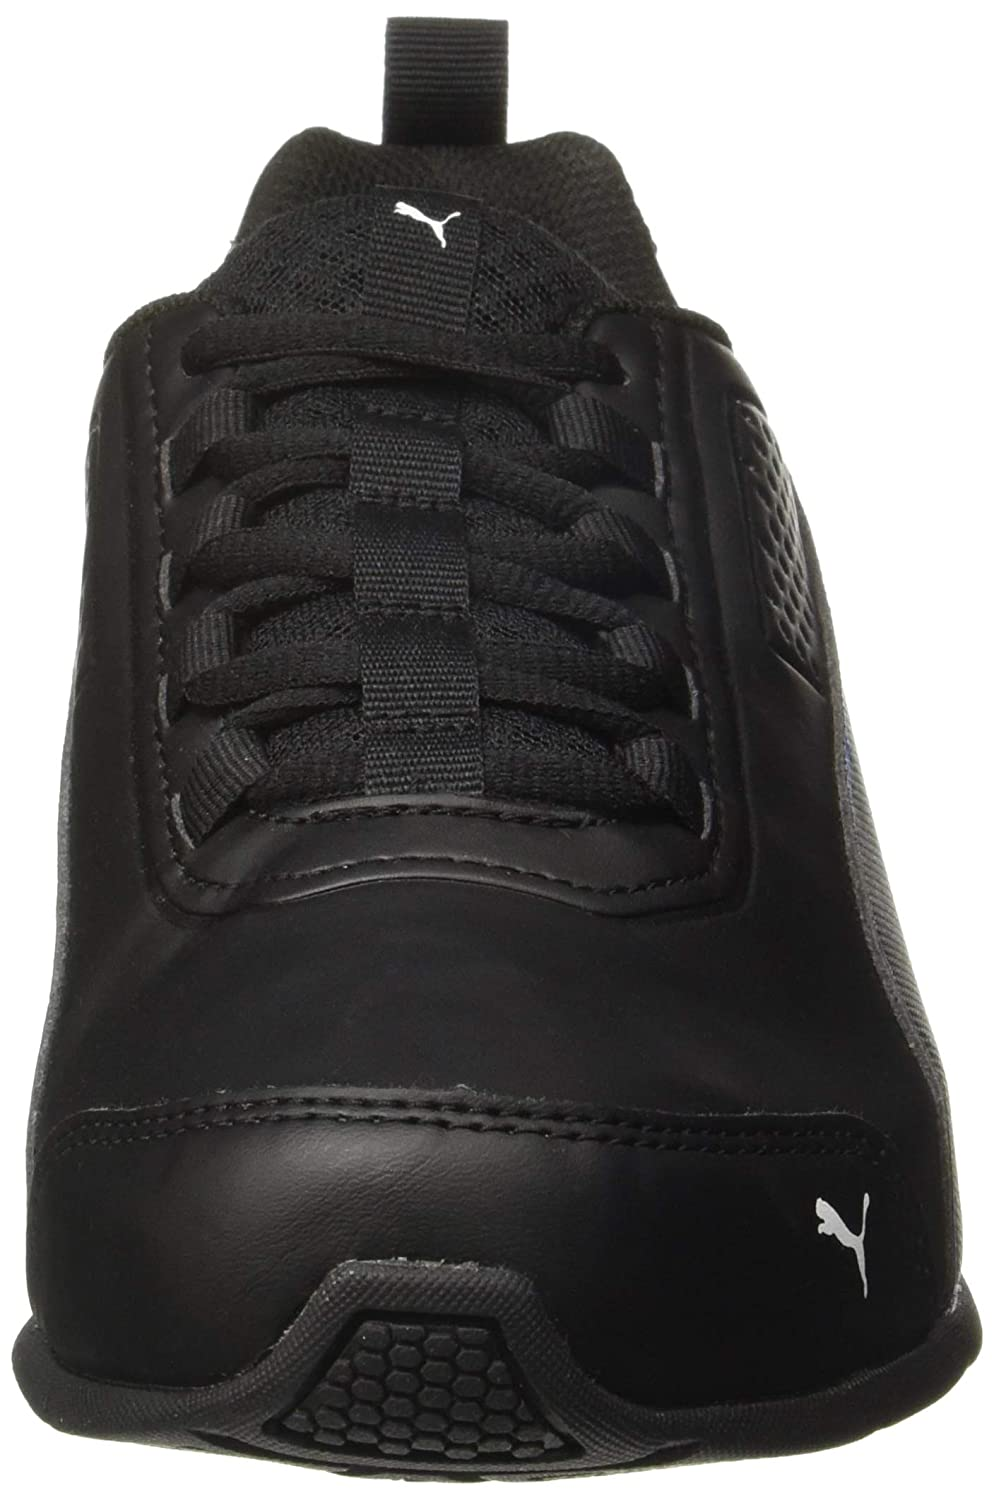 894f72ec779 Puma Unisex Adults  Leader Vt Sl Competition Running Shoes  Amazon.co.uk   Shoes   Bags